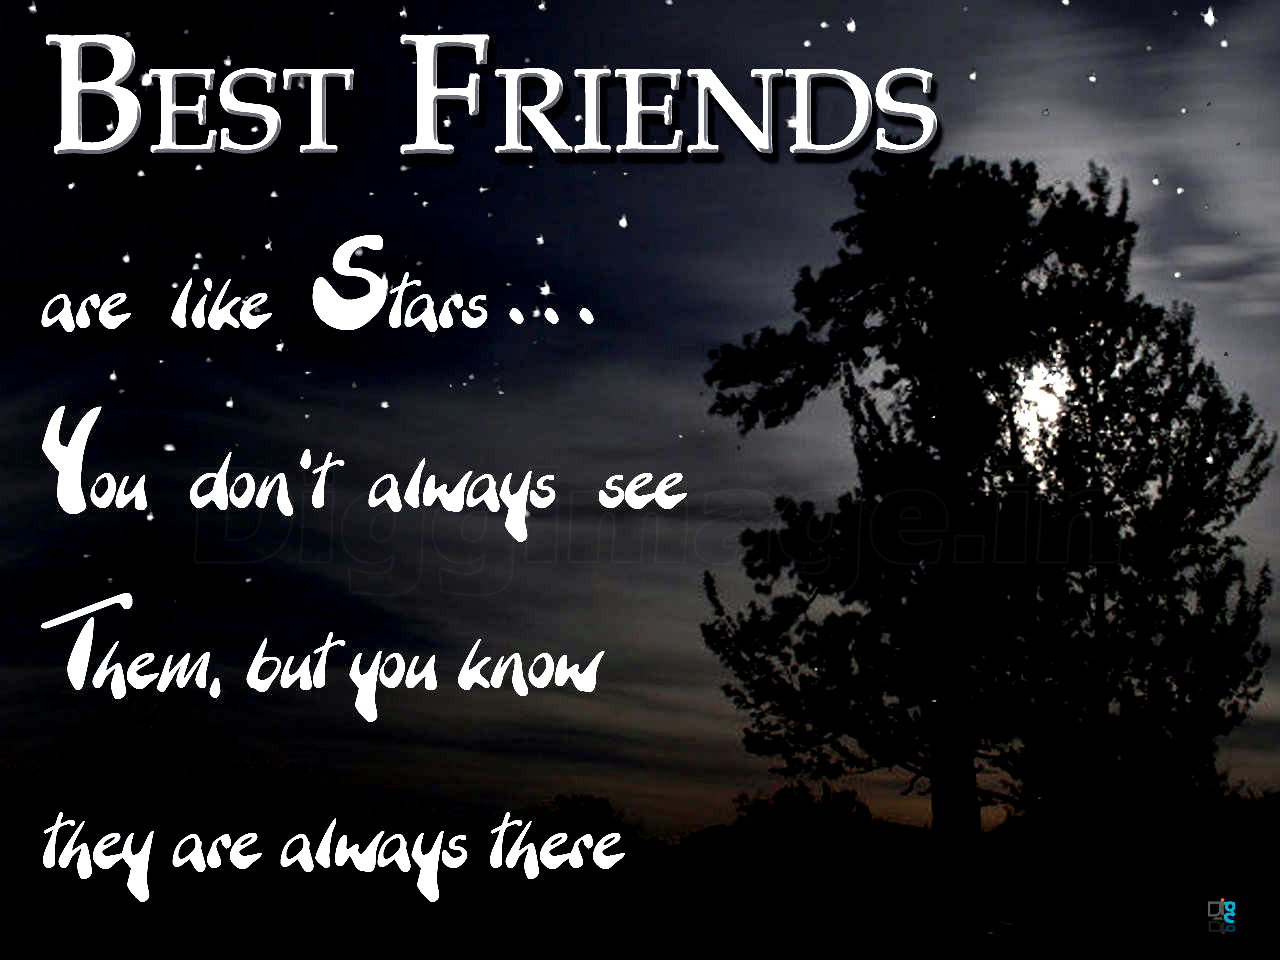 Quotes About Best Friends You Dont See Much : Best friends are like stars you don t always see them